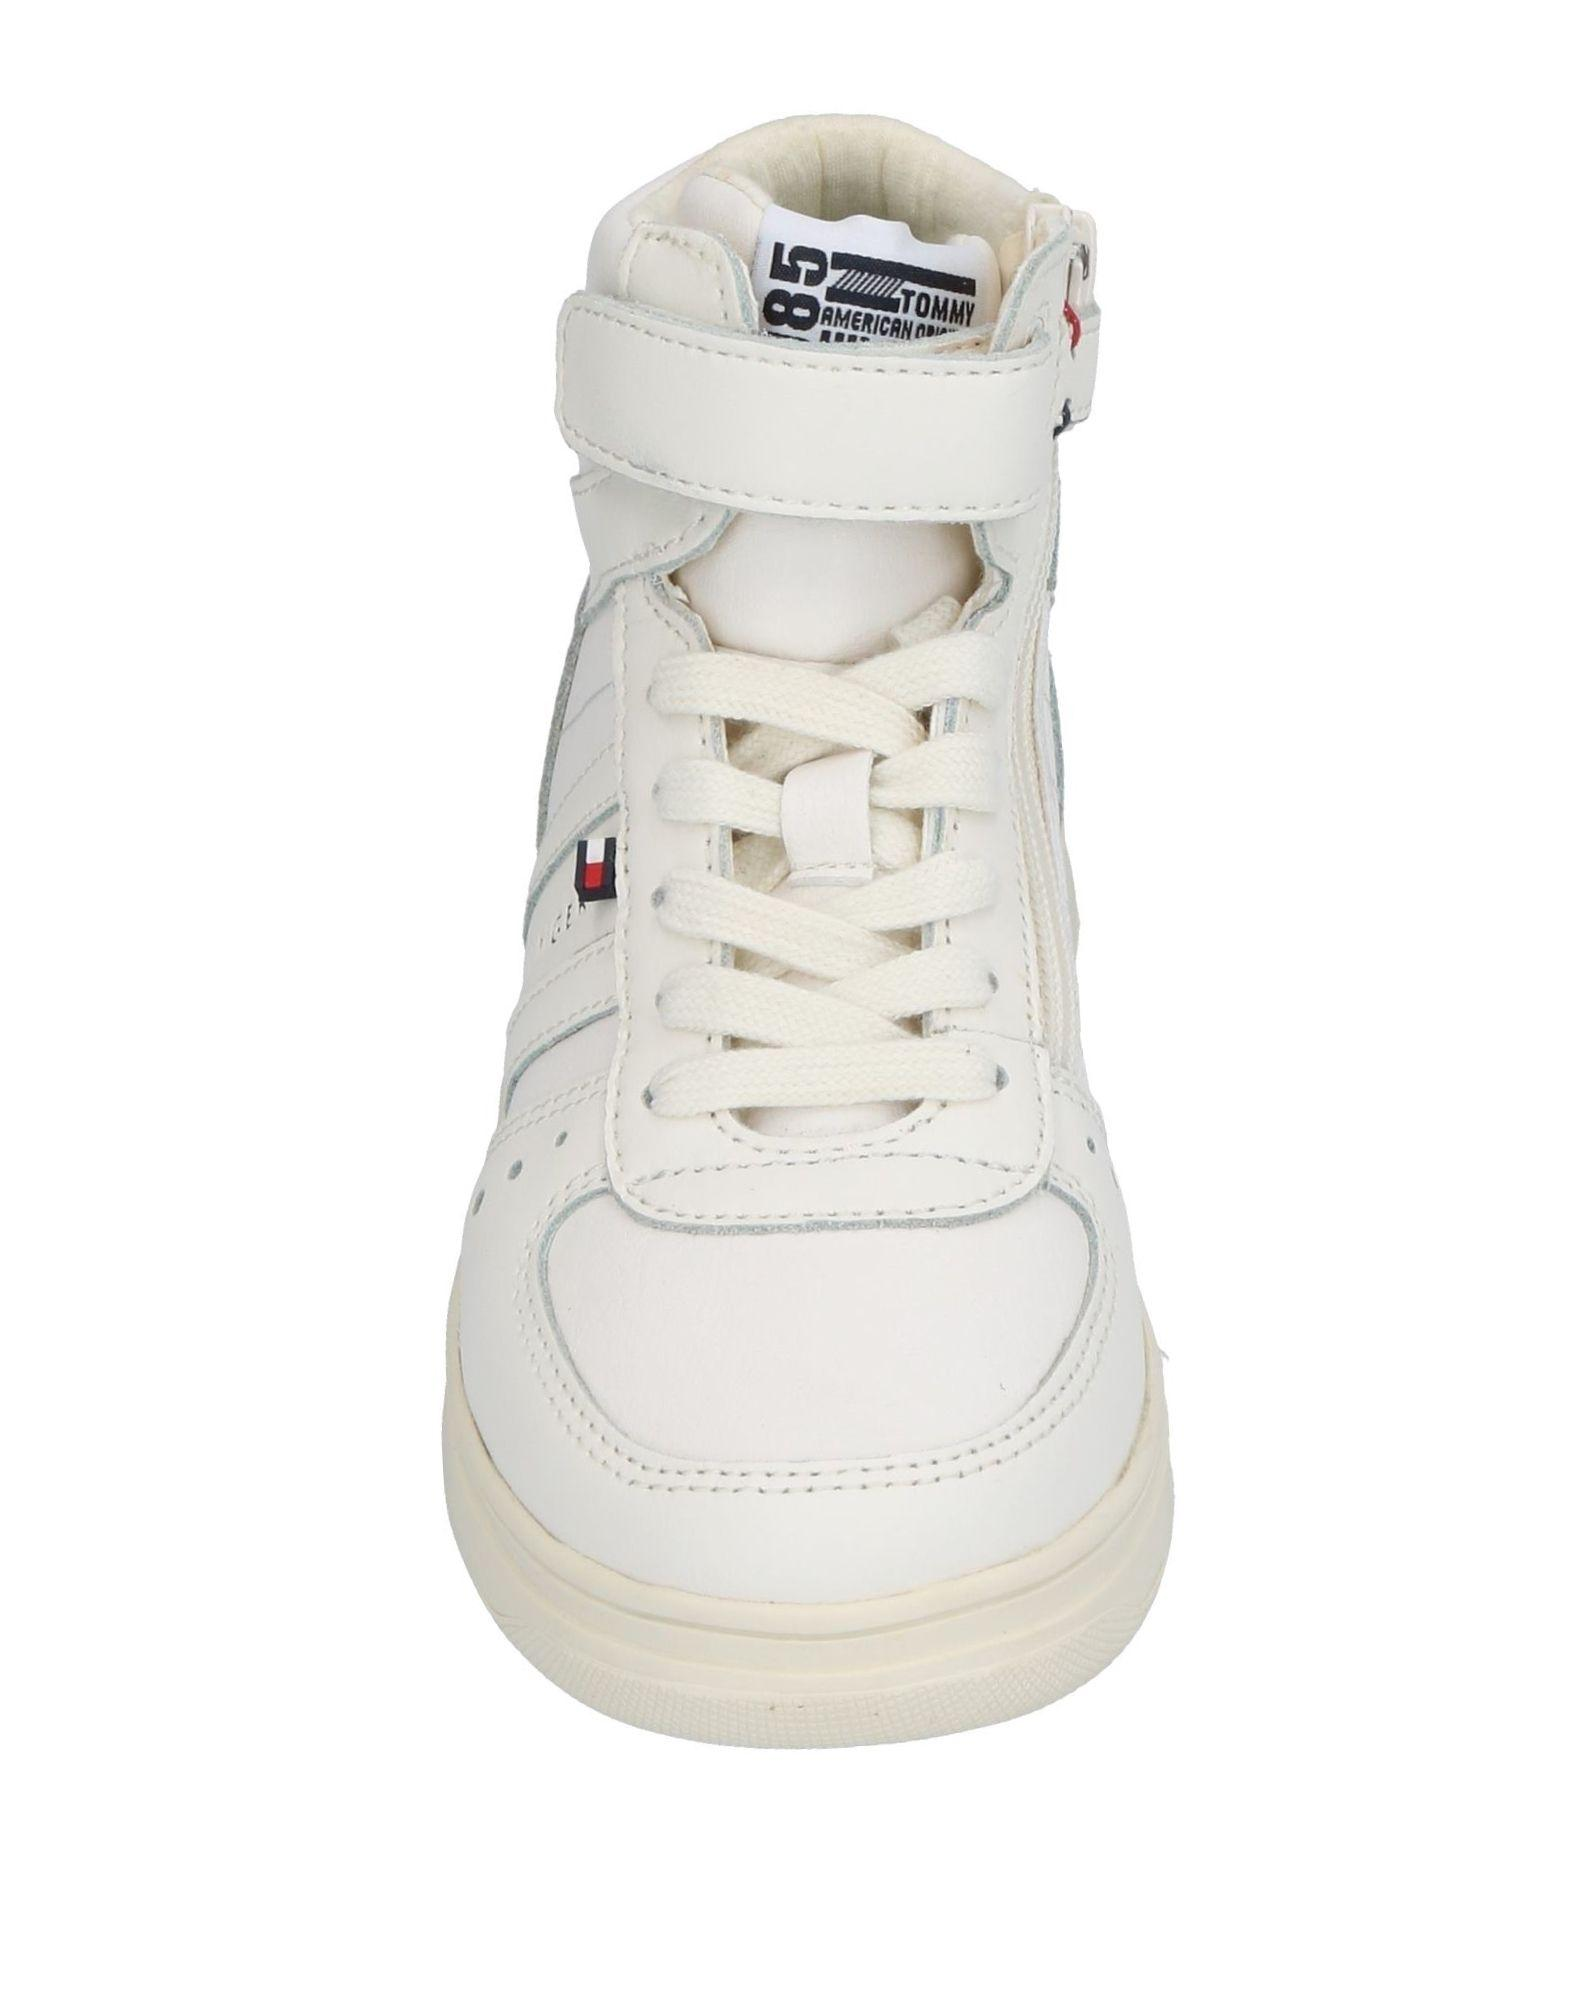 184a77c9 Lyst - Tommy Hilfiger High-tops & Sneakers in White for Men